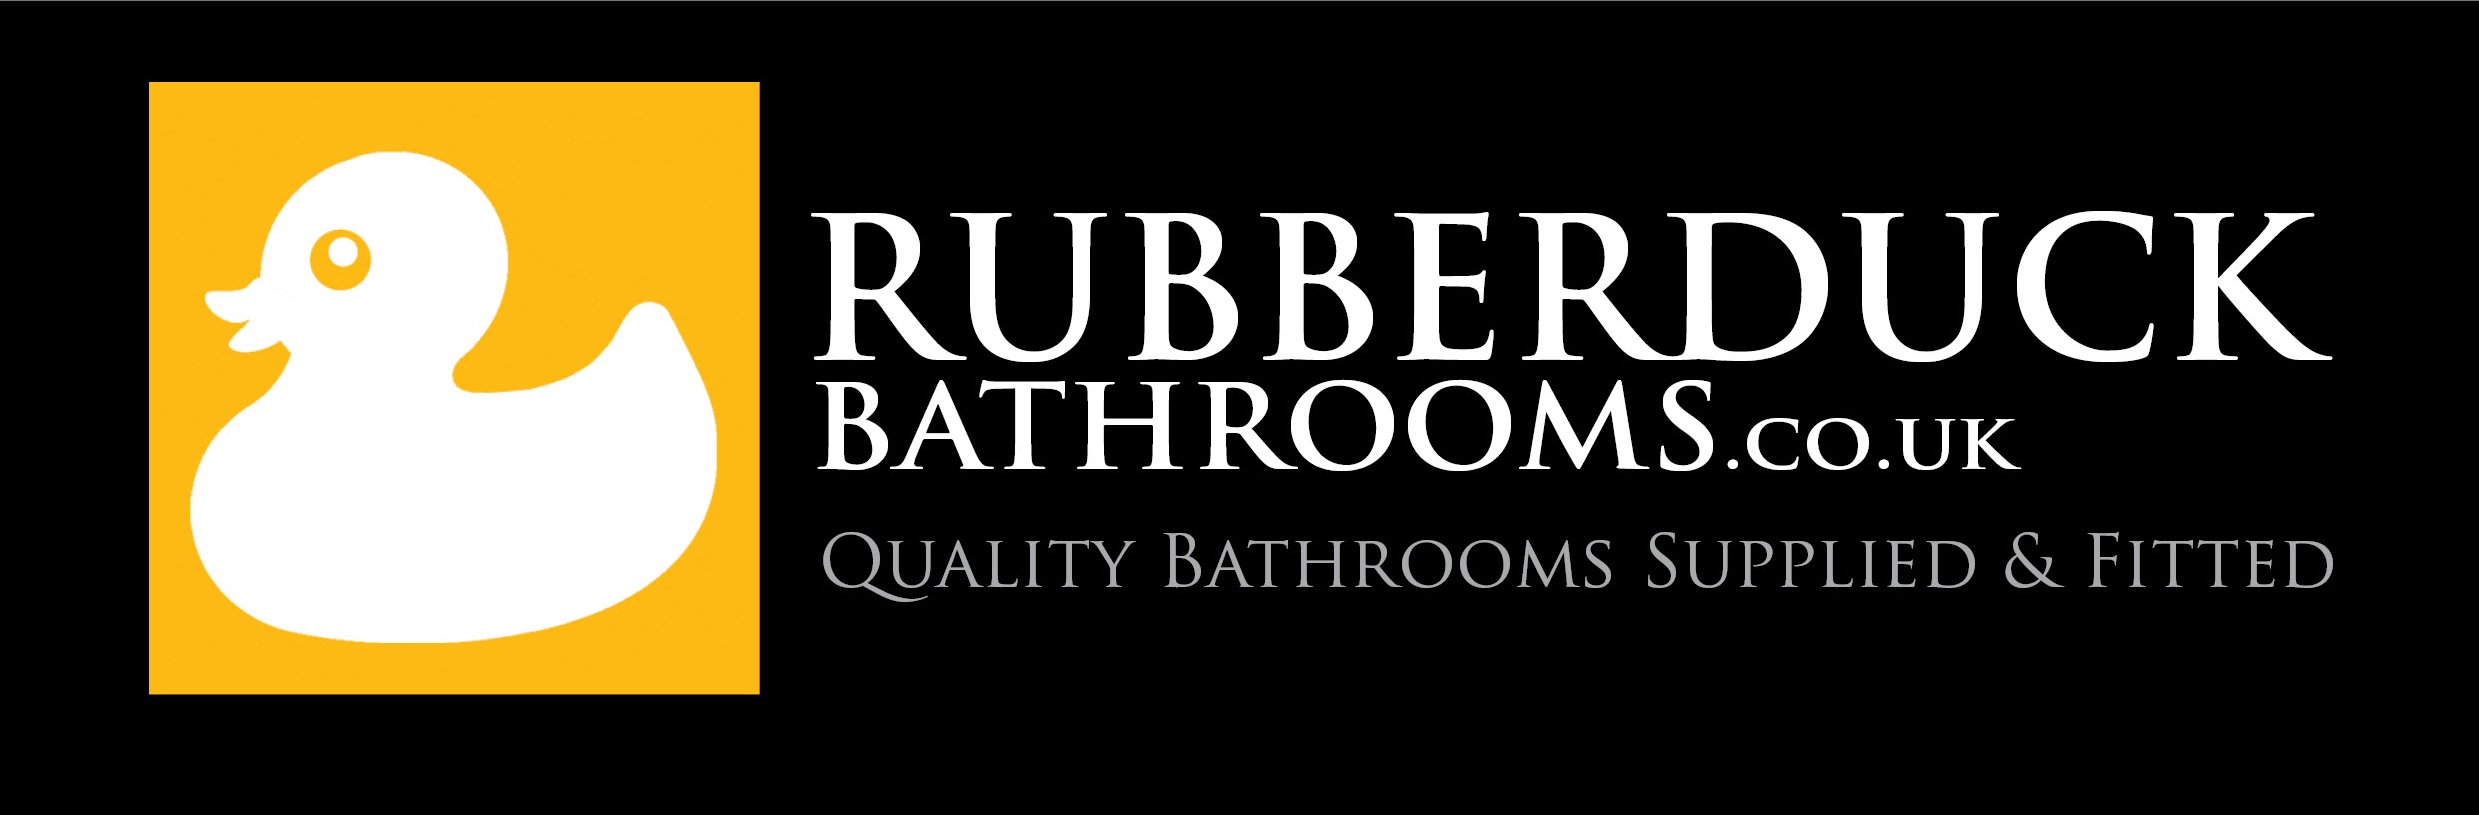 Read Rubberduck Bathrooms Ltd Reviews